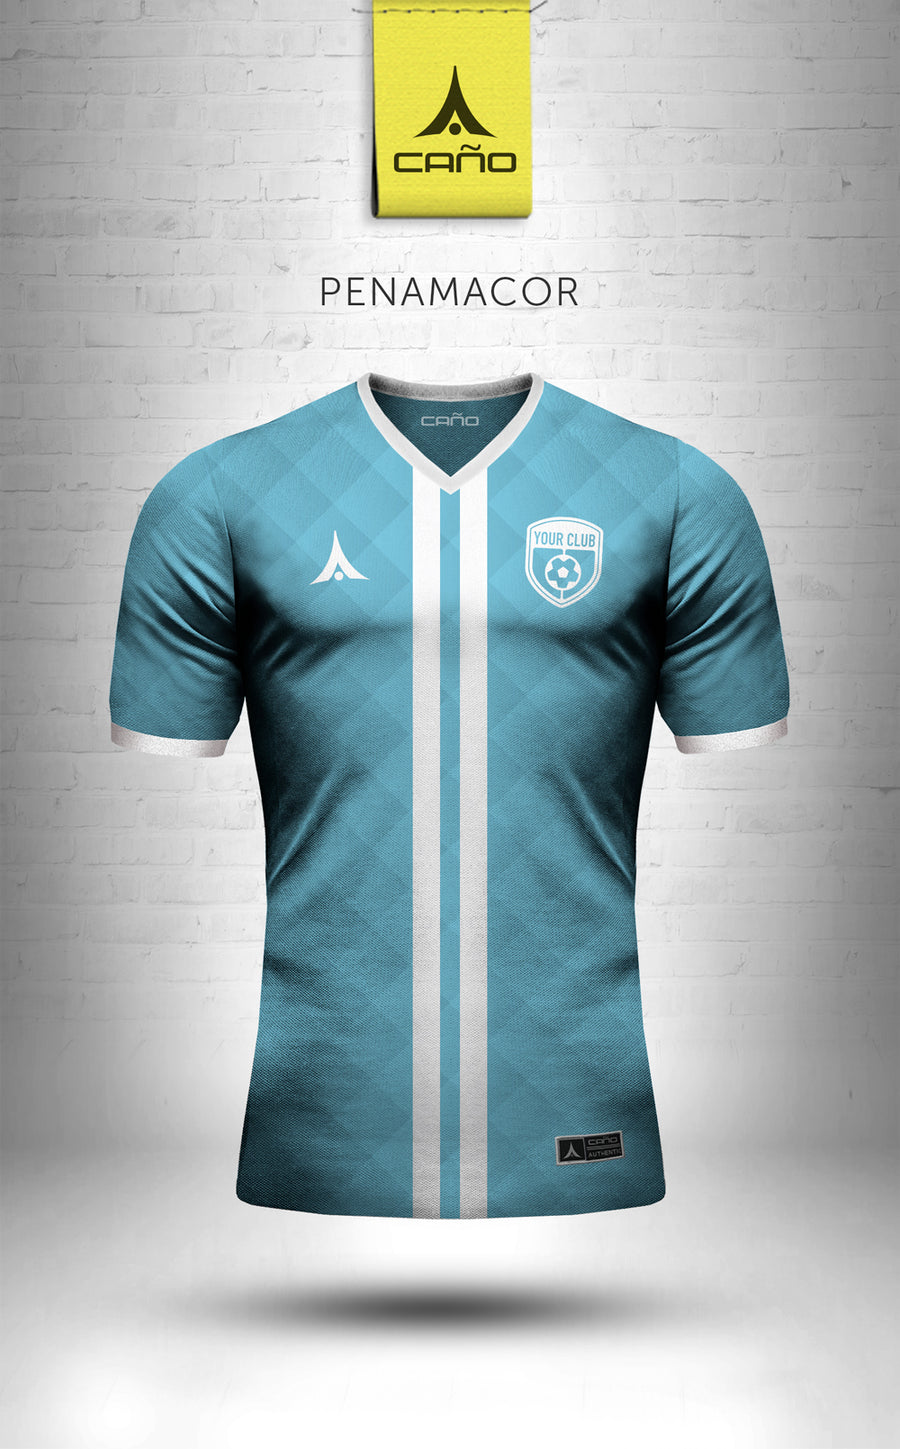 Penamacor in light blue/white